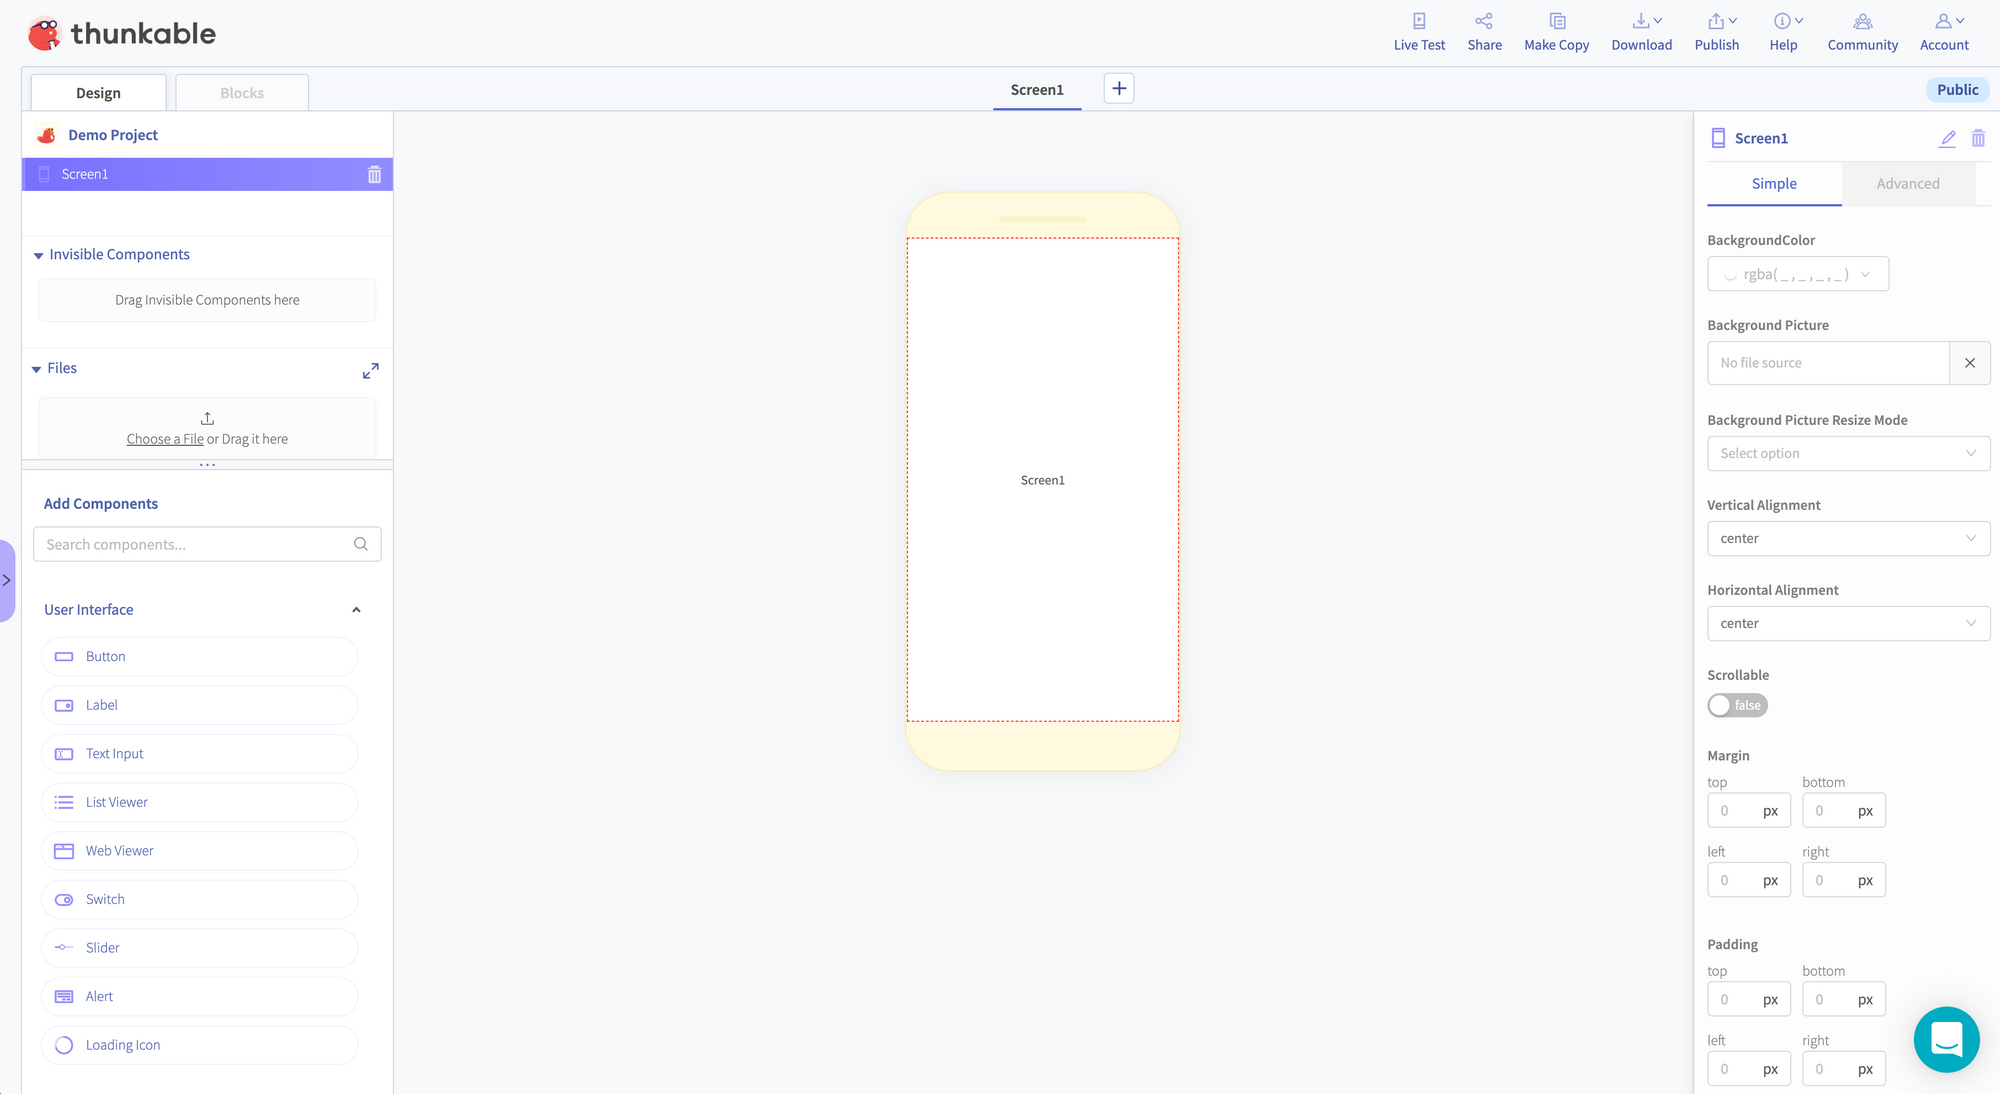 Making an App with Thunkable